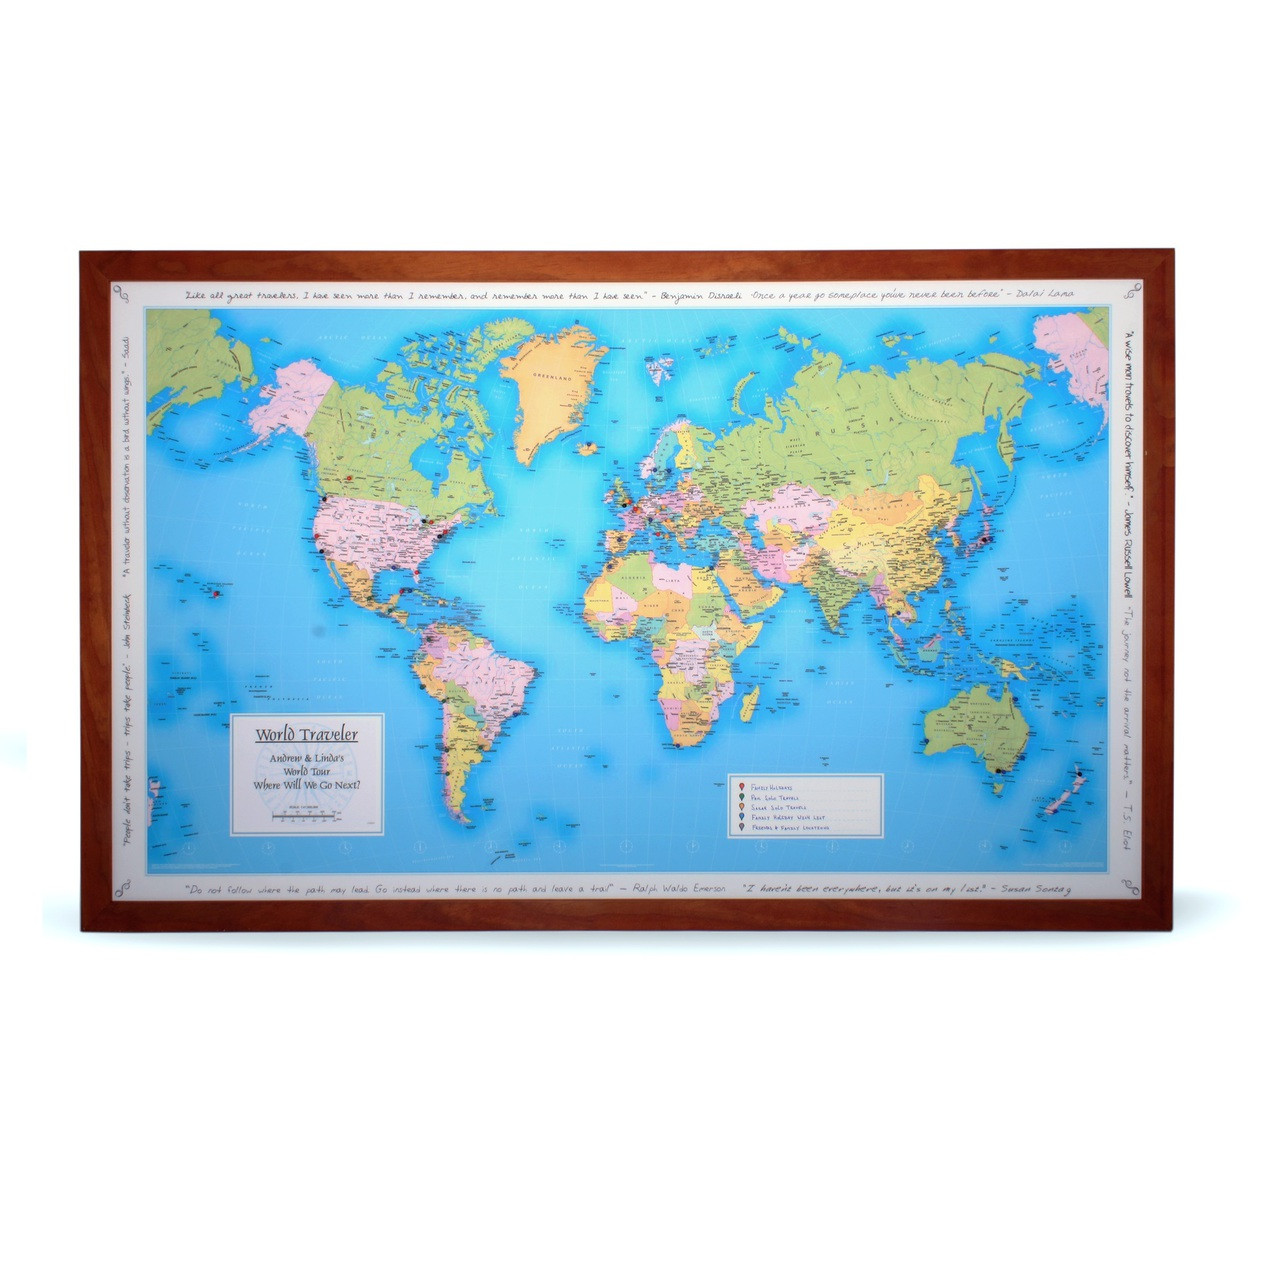 Personalized Traveler and Wall Maps – Personalized World Traveler Map Set